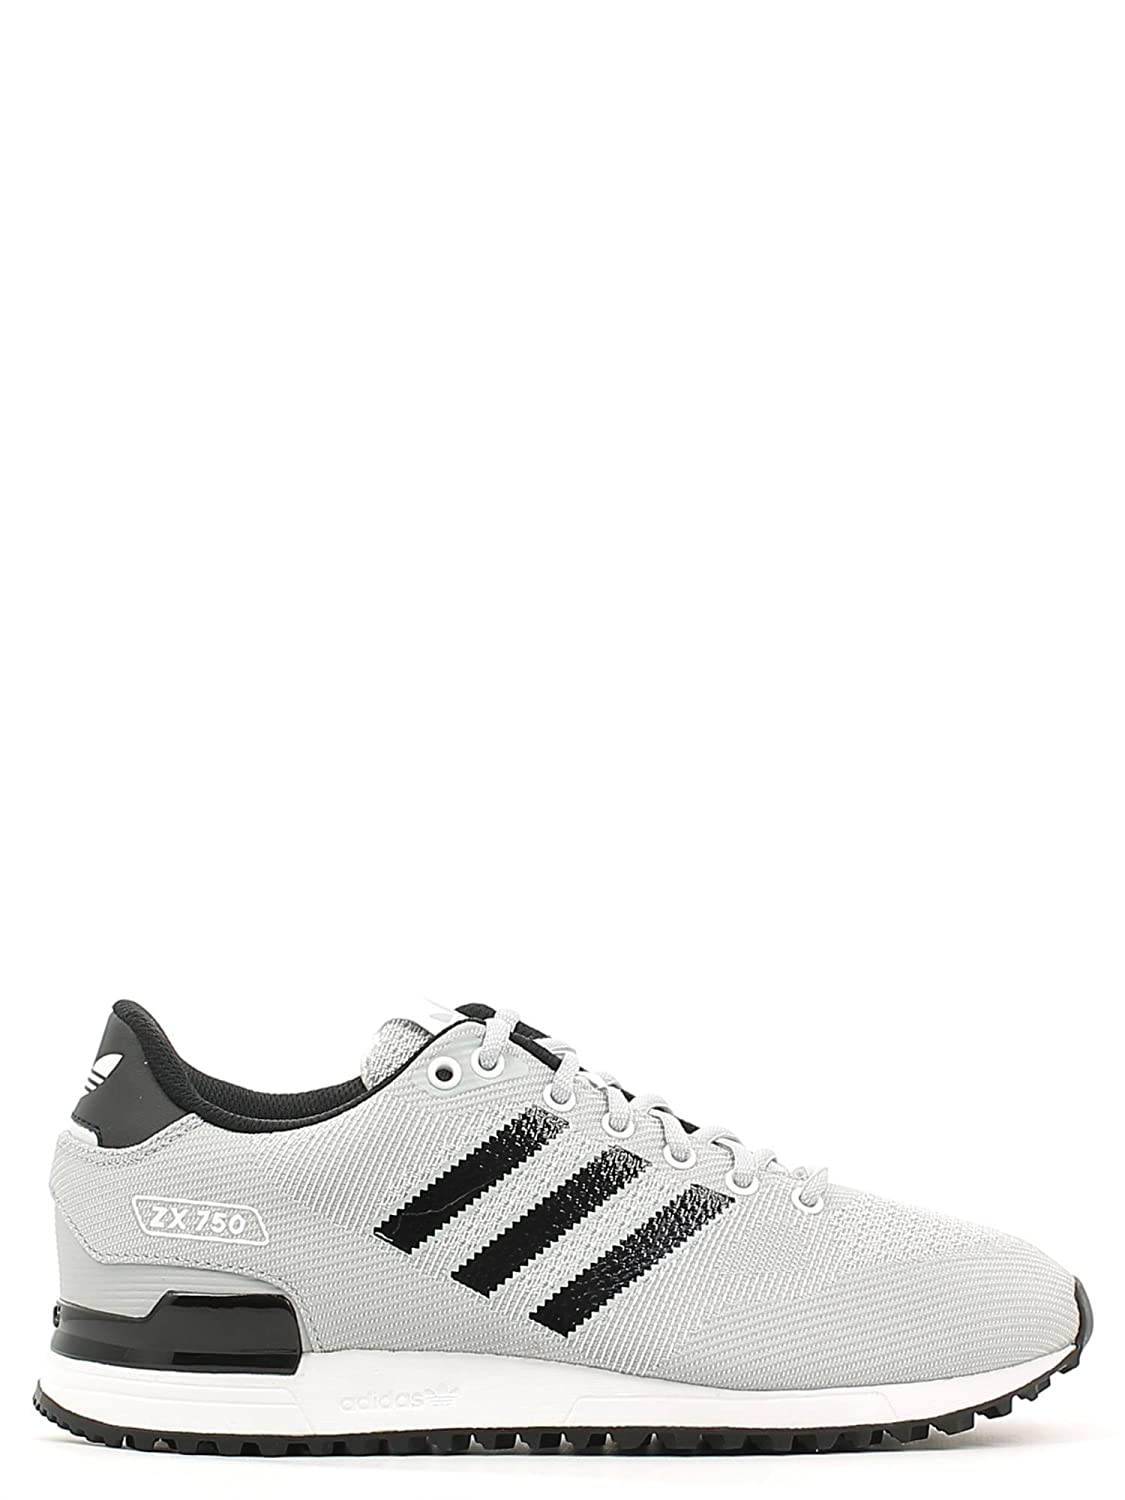 hot sale online ce165 32a3d ... 50% off adidas zx 750 wv scarpe sportive uomo grigie s79198 amazon shoes  bags 987cd